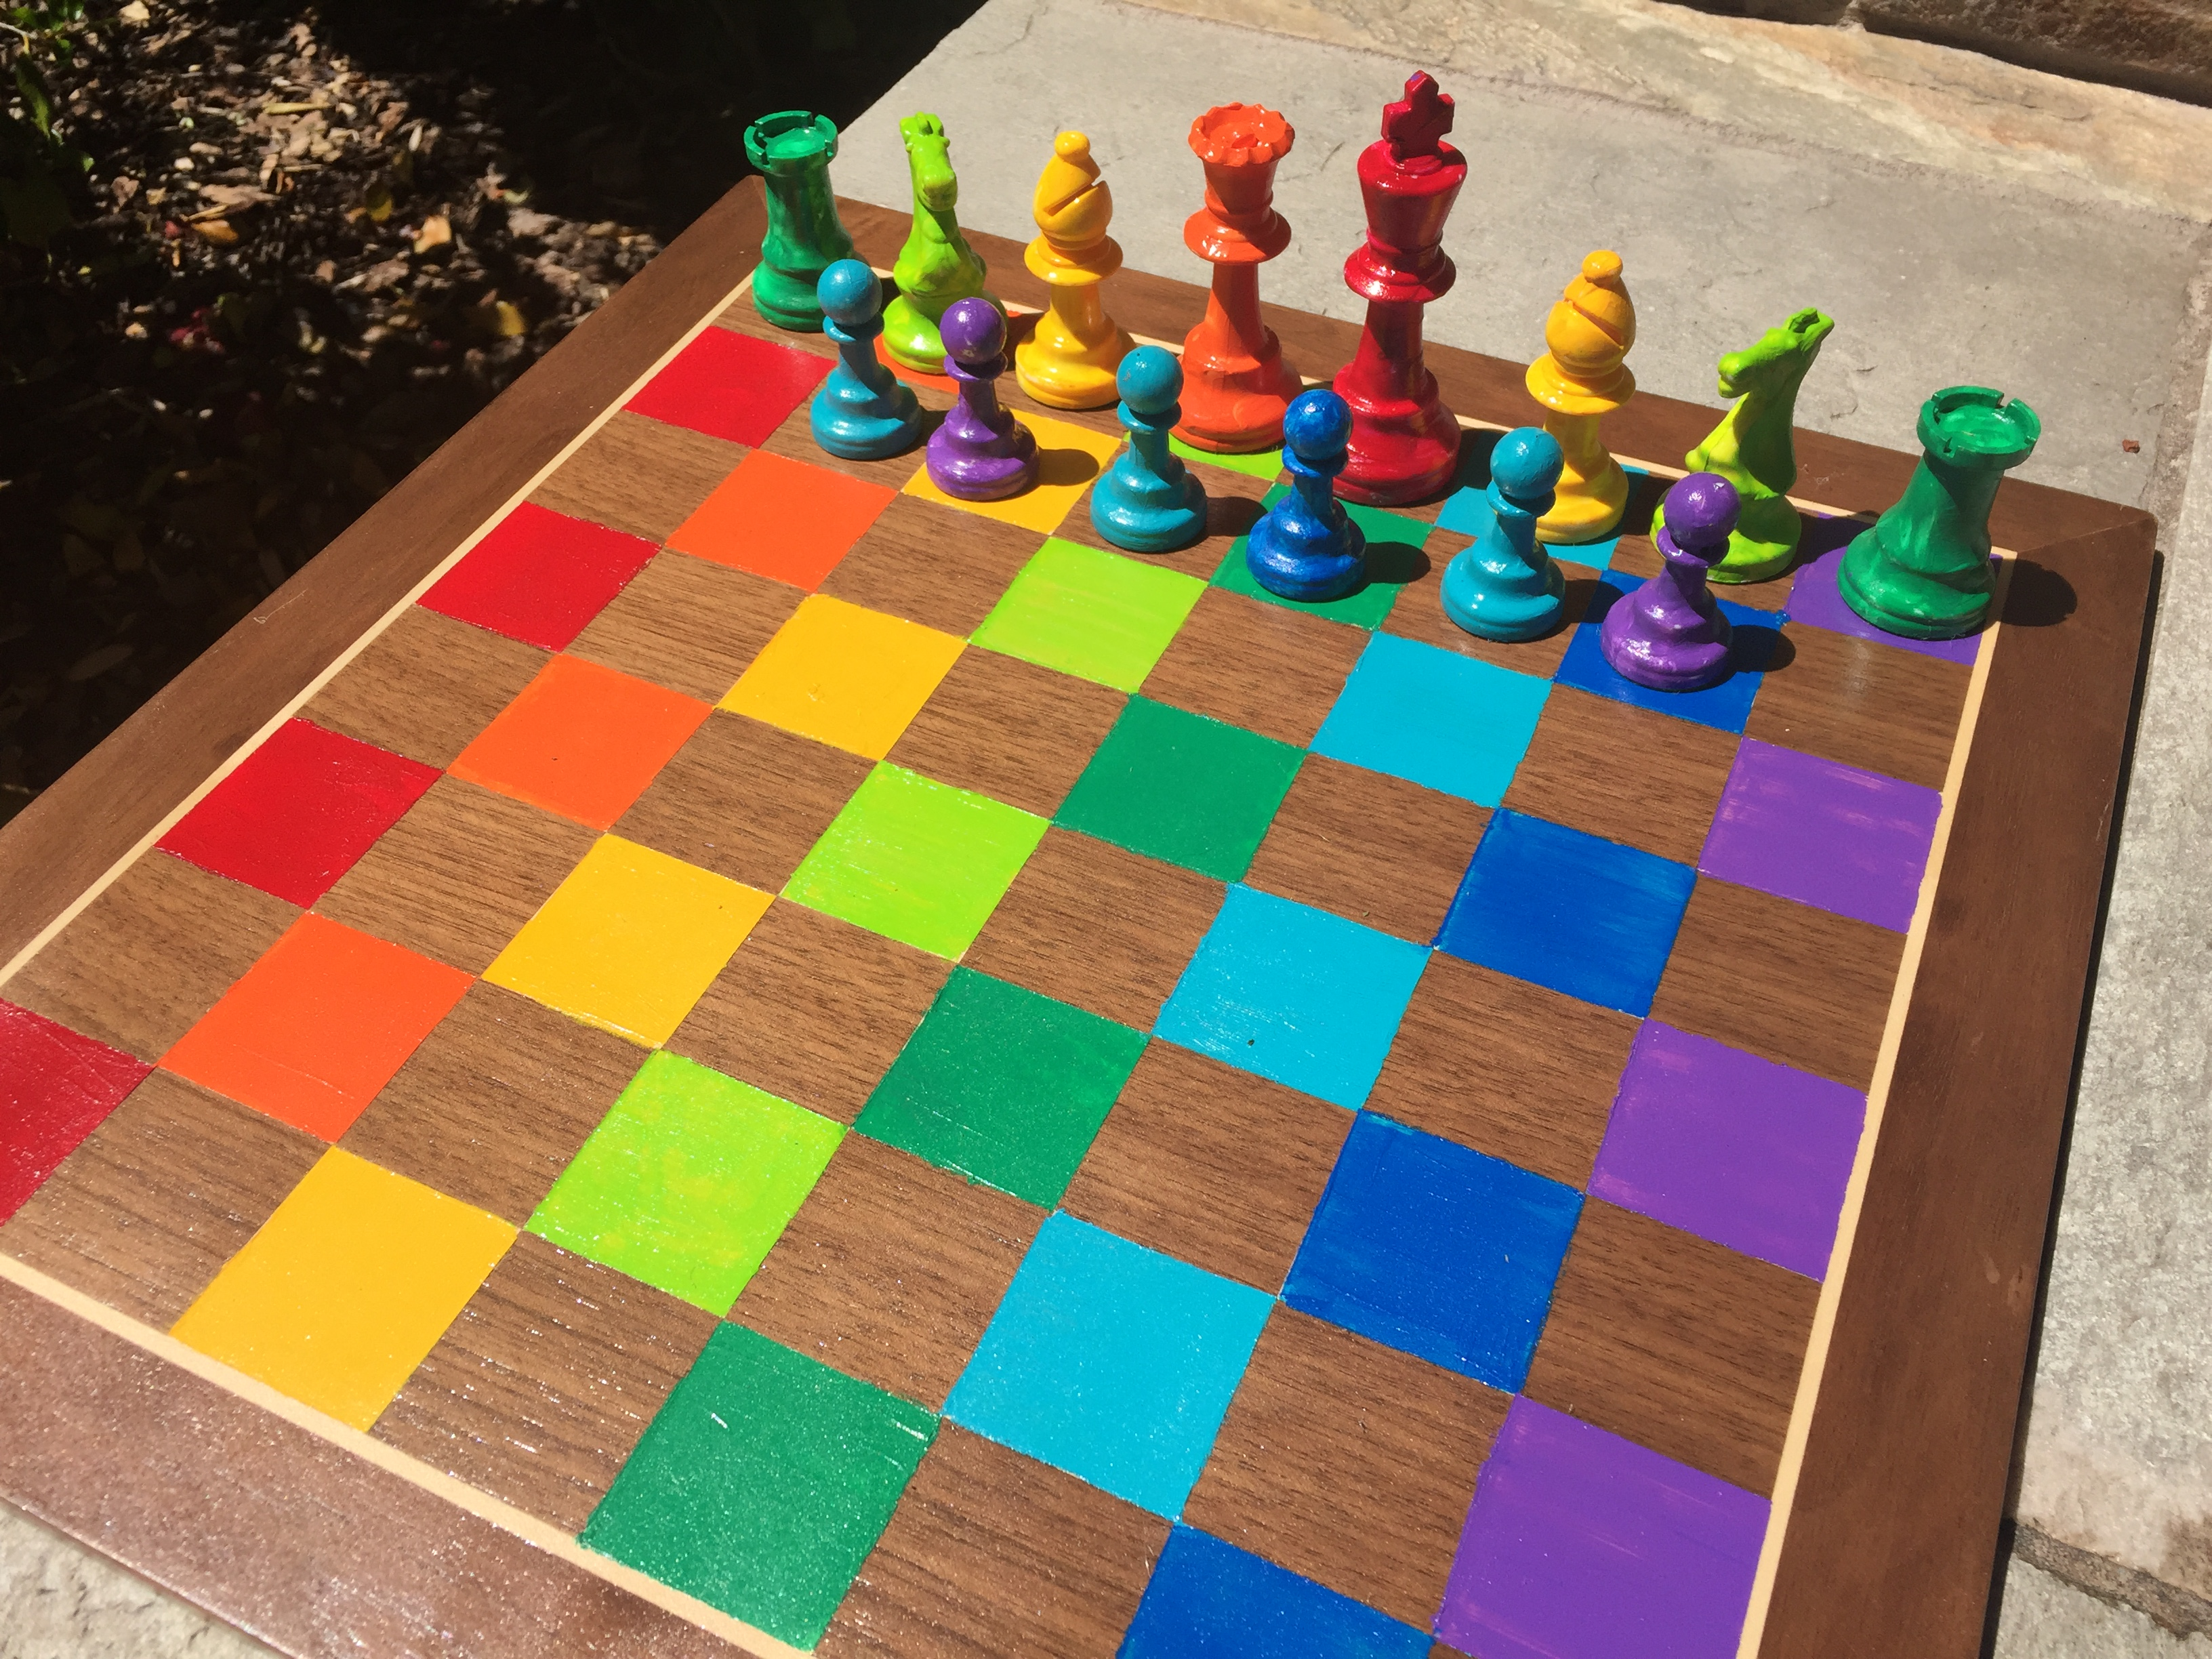 Kindergartners Paint Chess Sets Including this rainbow one